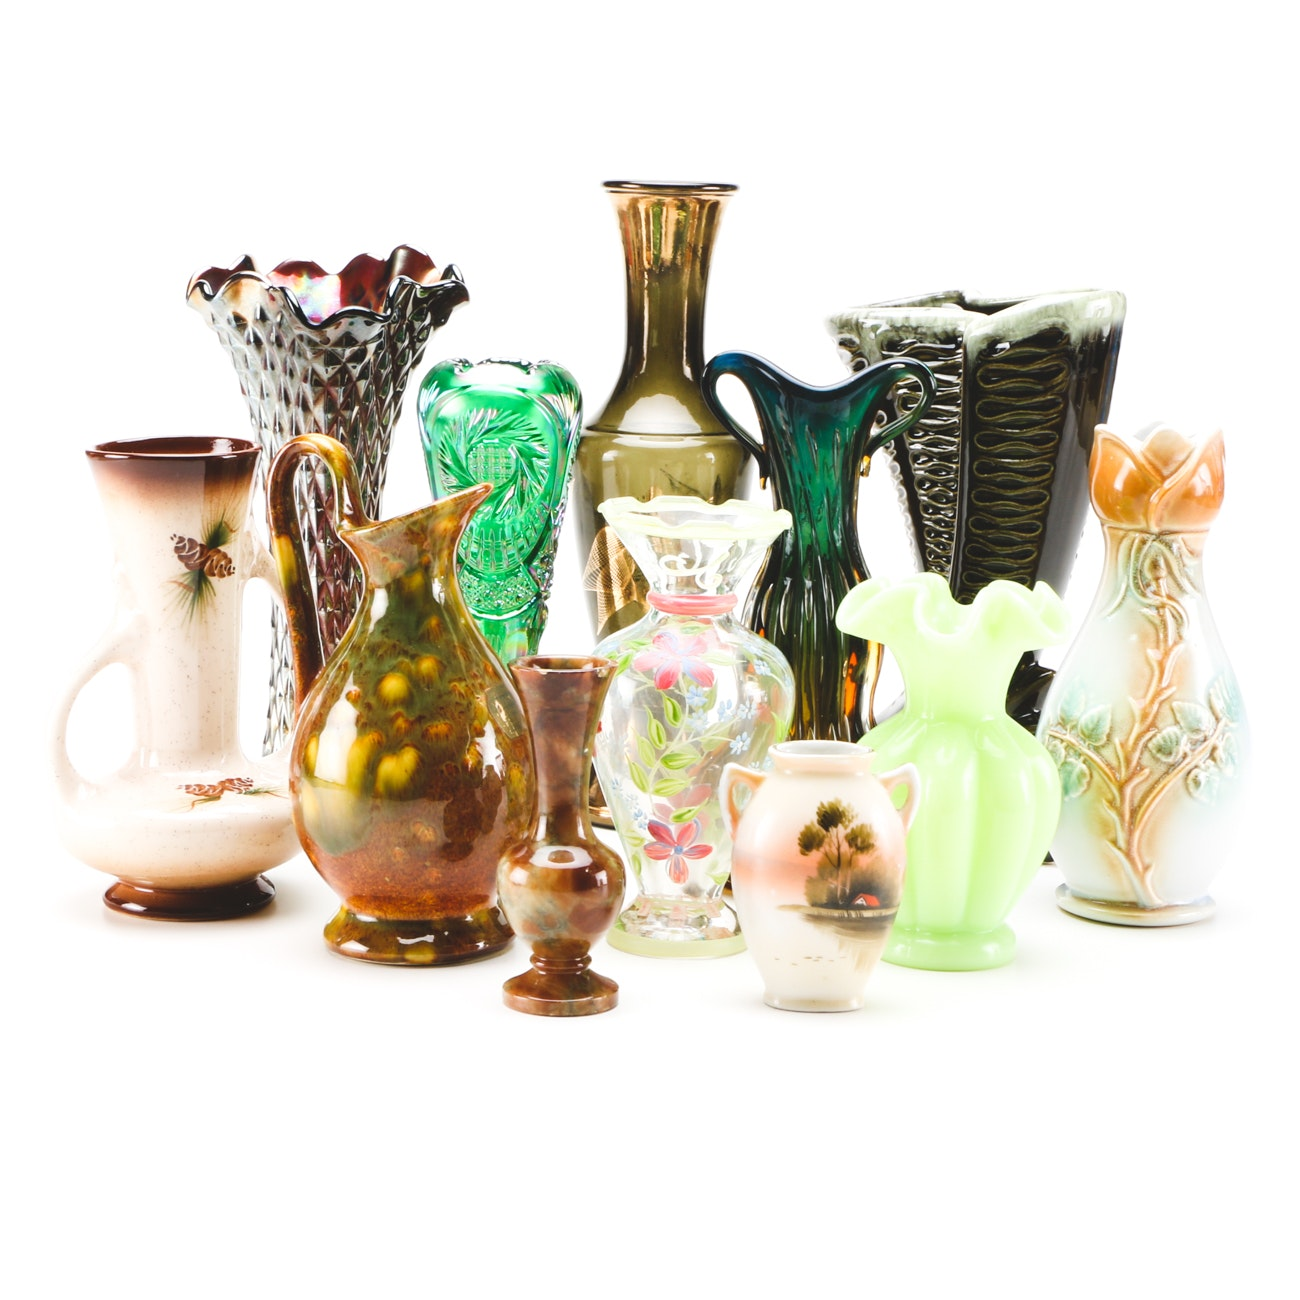 Assorted Vintage Art and Glass Pottery Vases